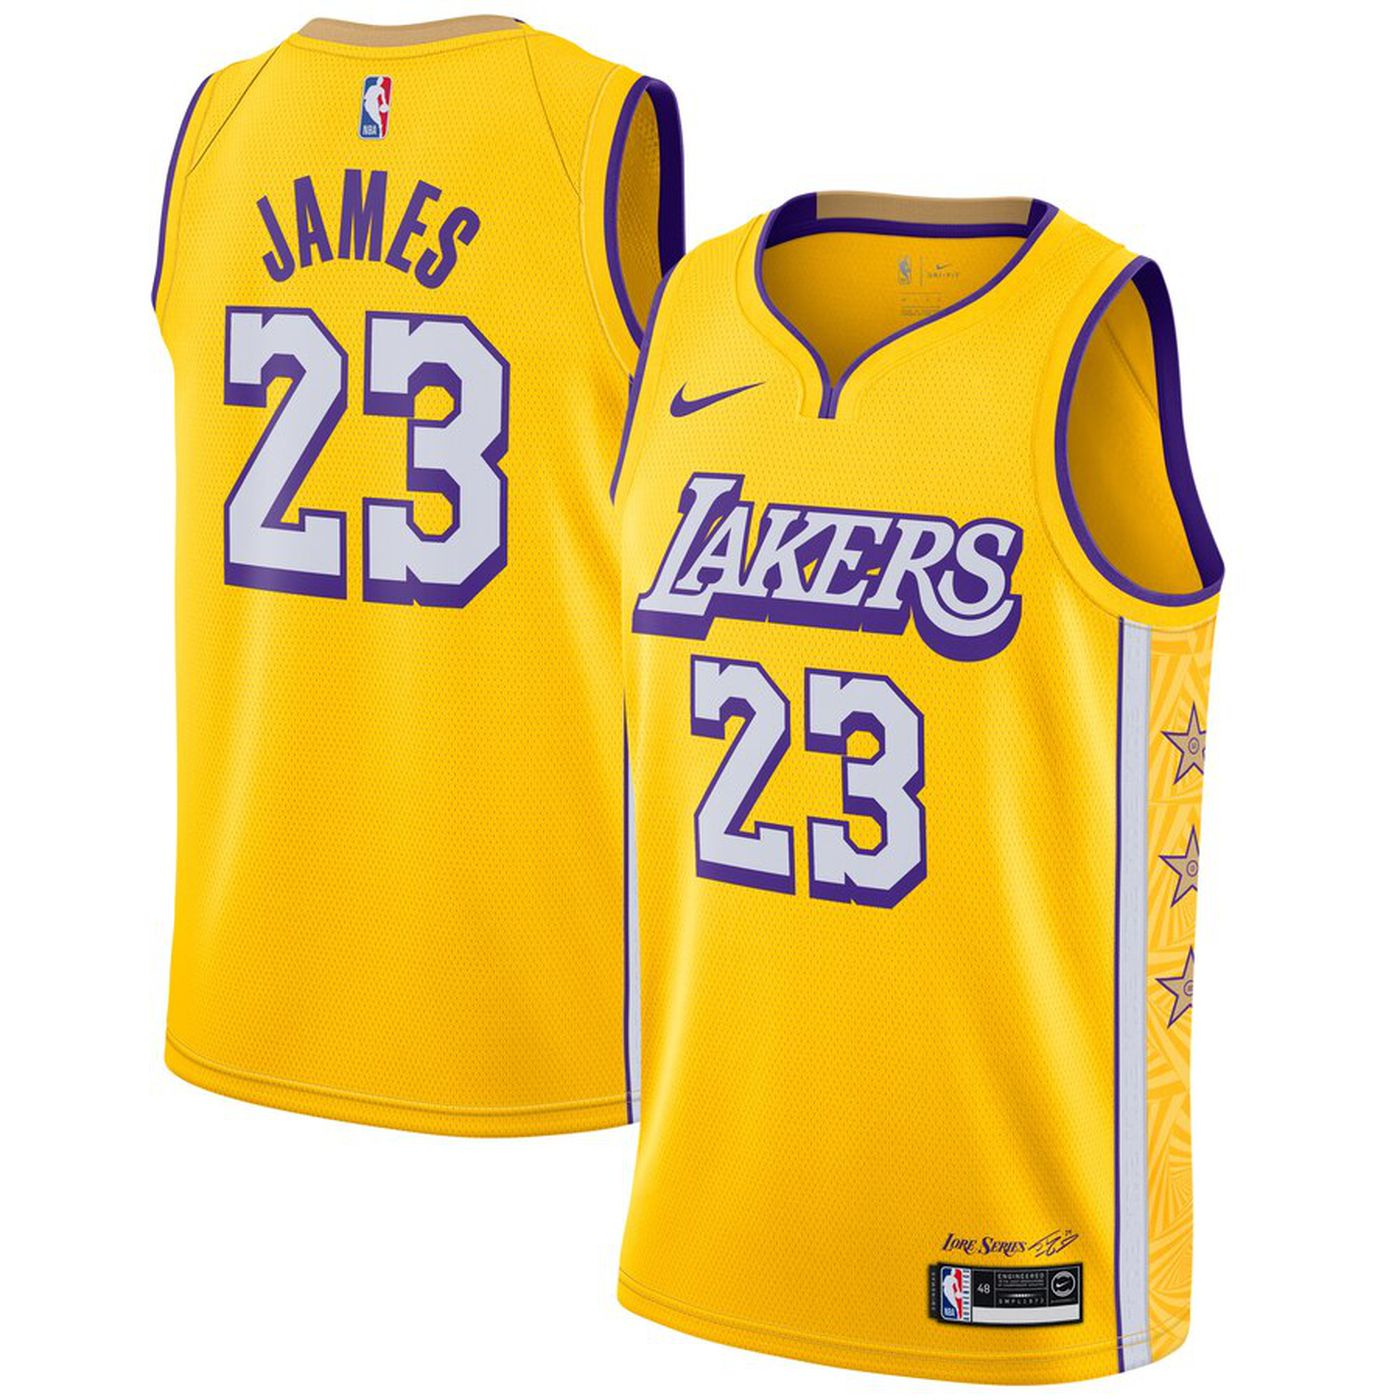 NBA City Edition 2019: Here's the new Los Angeles Lakers jerseys ...